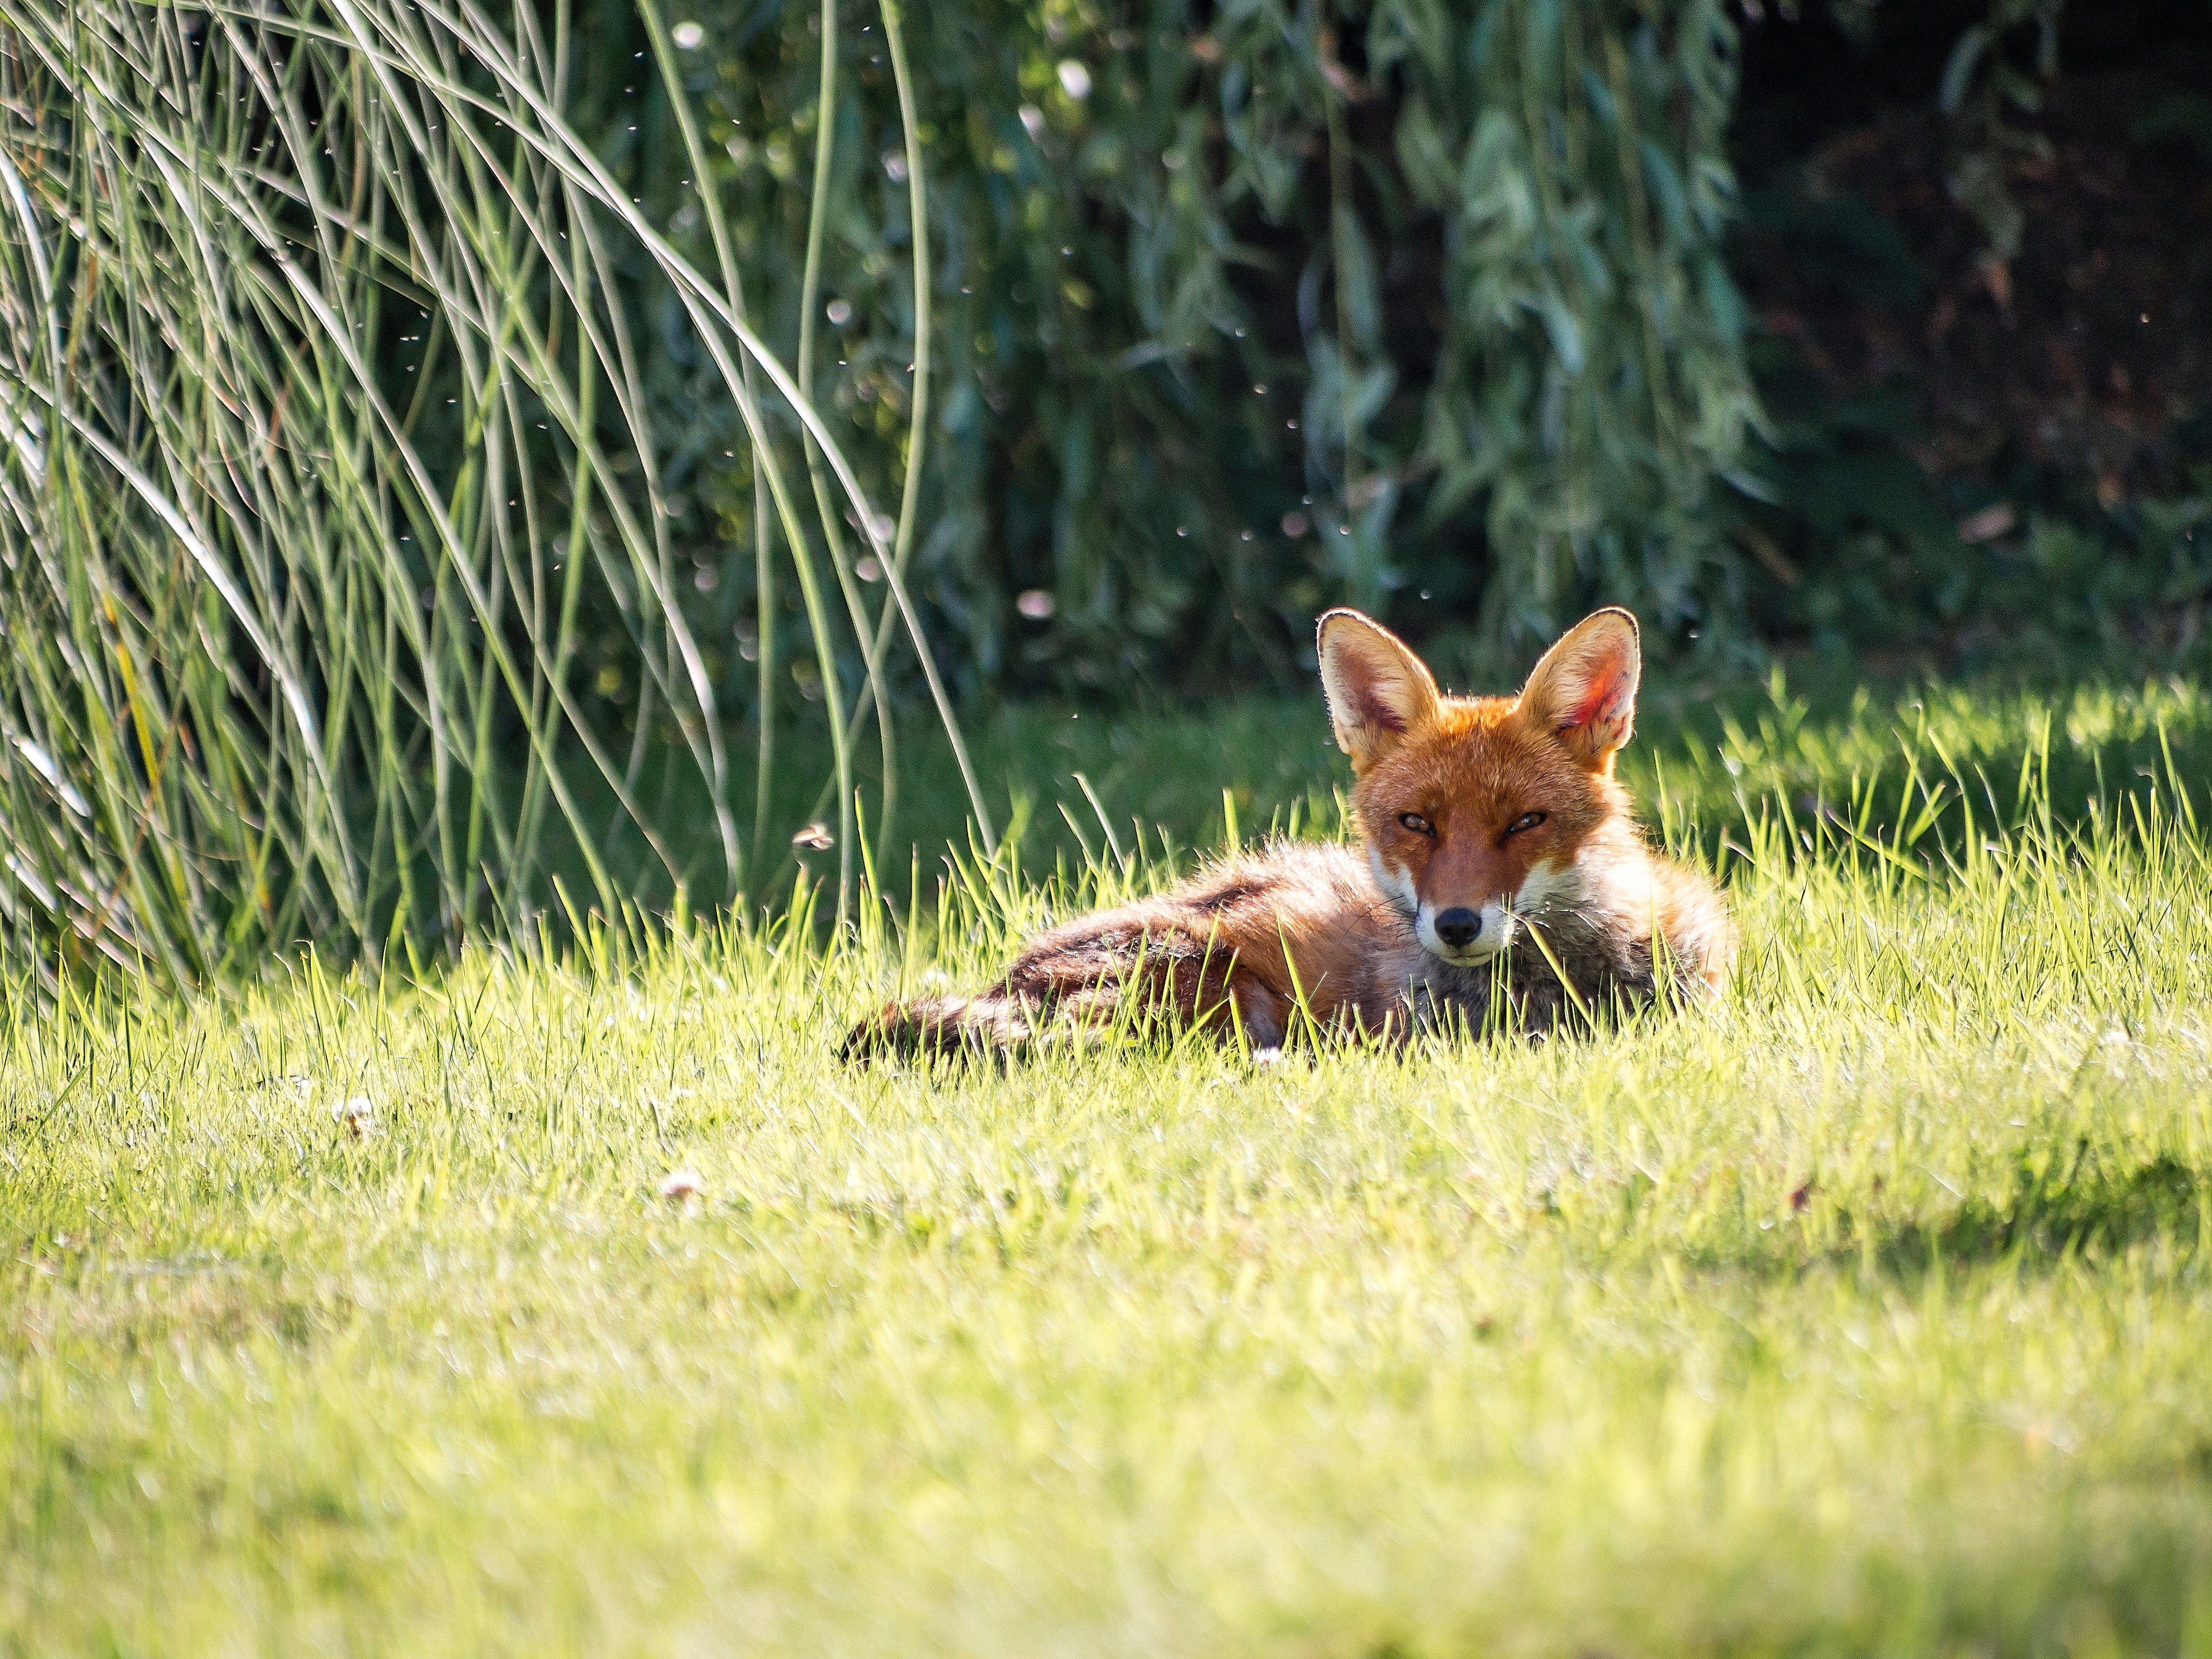 Photography of a Fox Lying on Grass